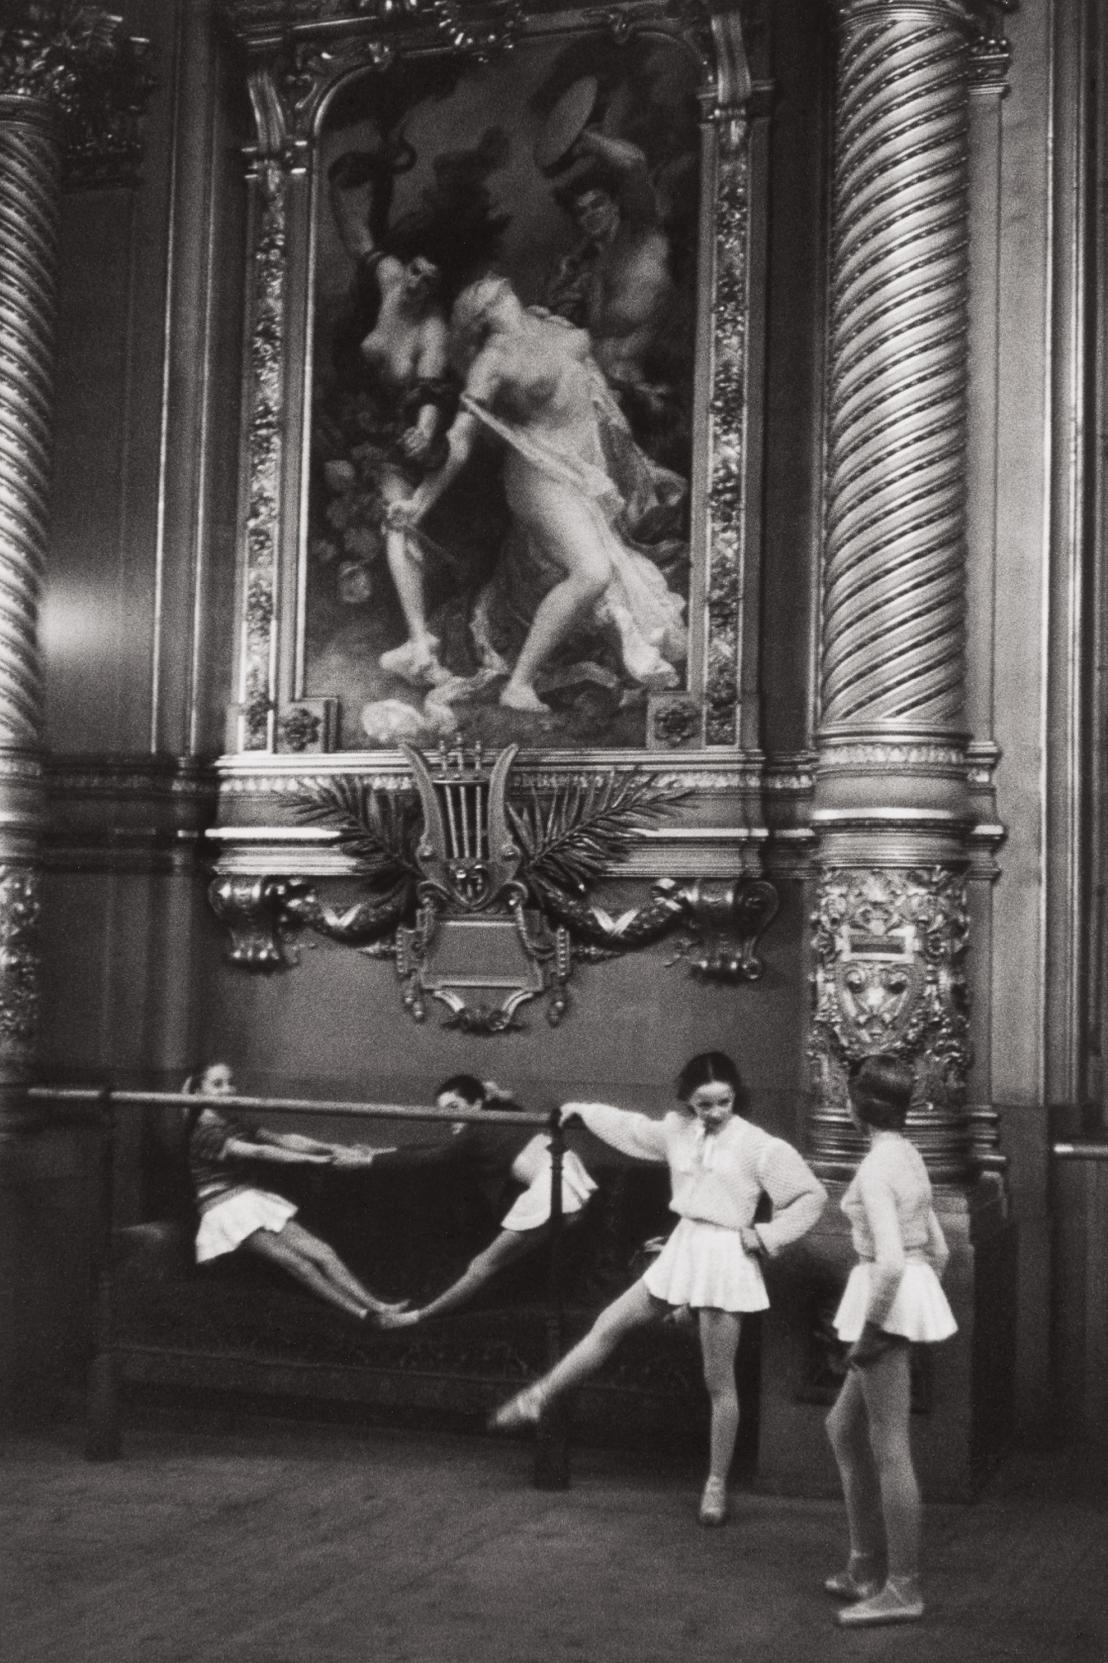 Henri Cartier-Bresson-Young Ballerinas, Palais Garnier Opera House, Paris-1954